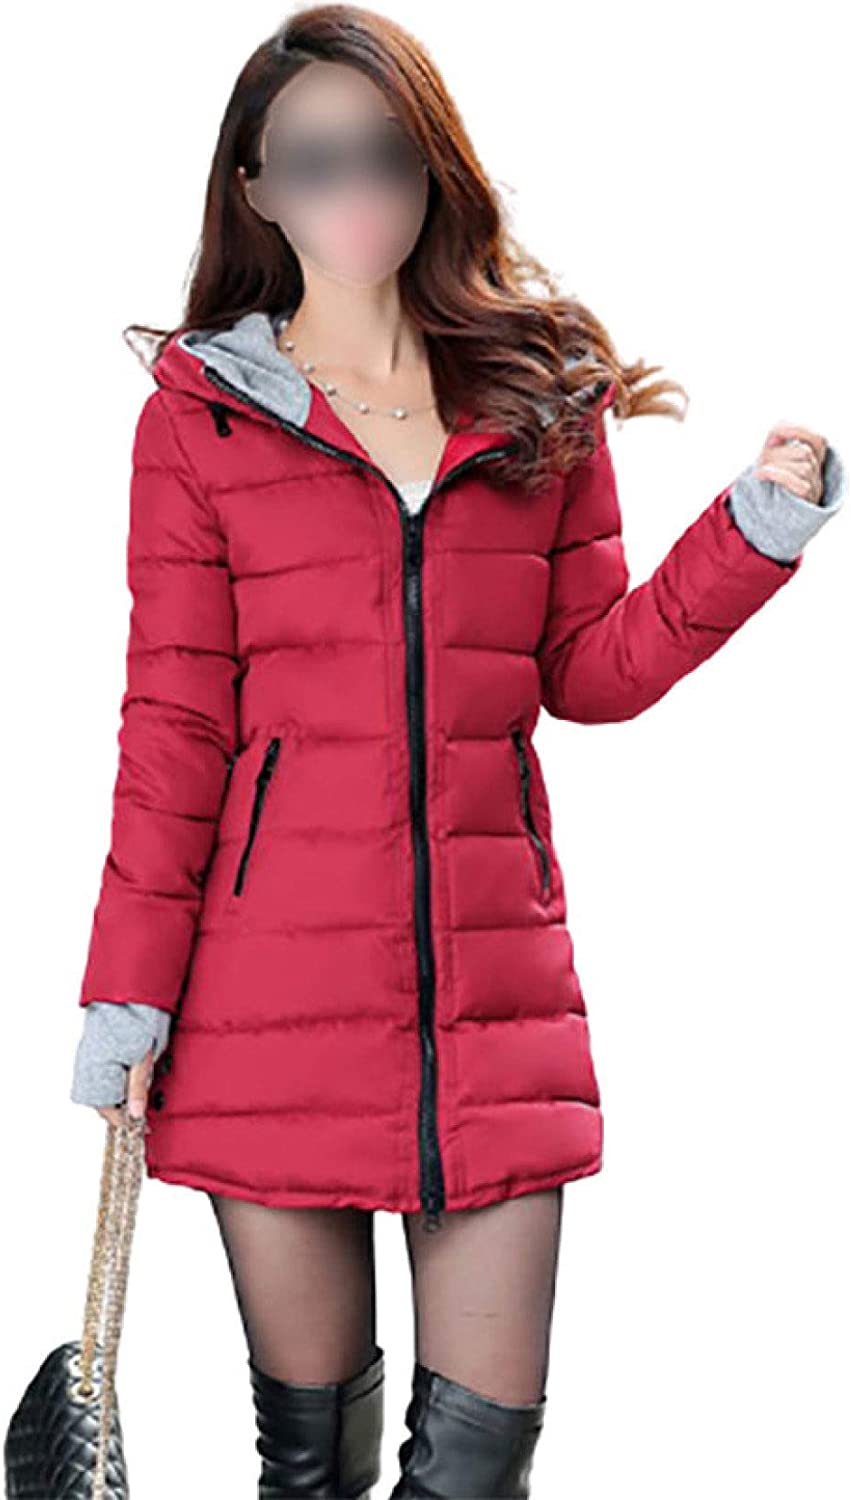 Women's Ultra-Light Long-Sleeve Full-Zip Water-Resistant Slim Quilted Hooded Coat with Pocket